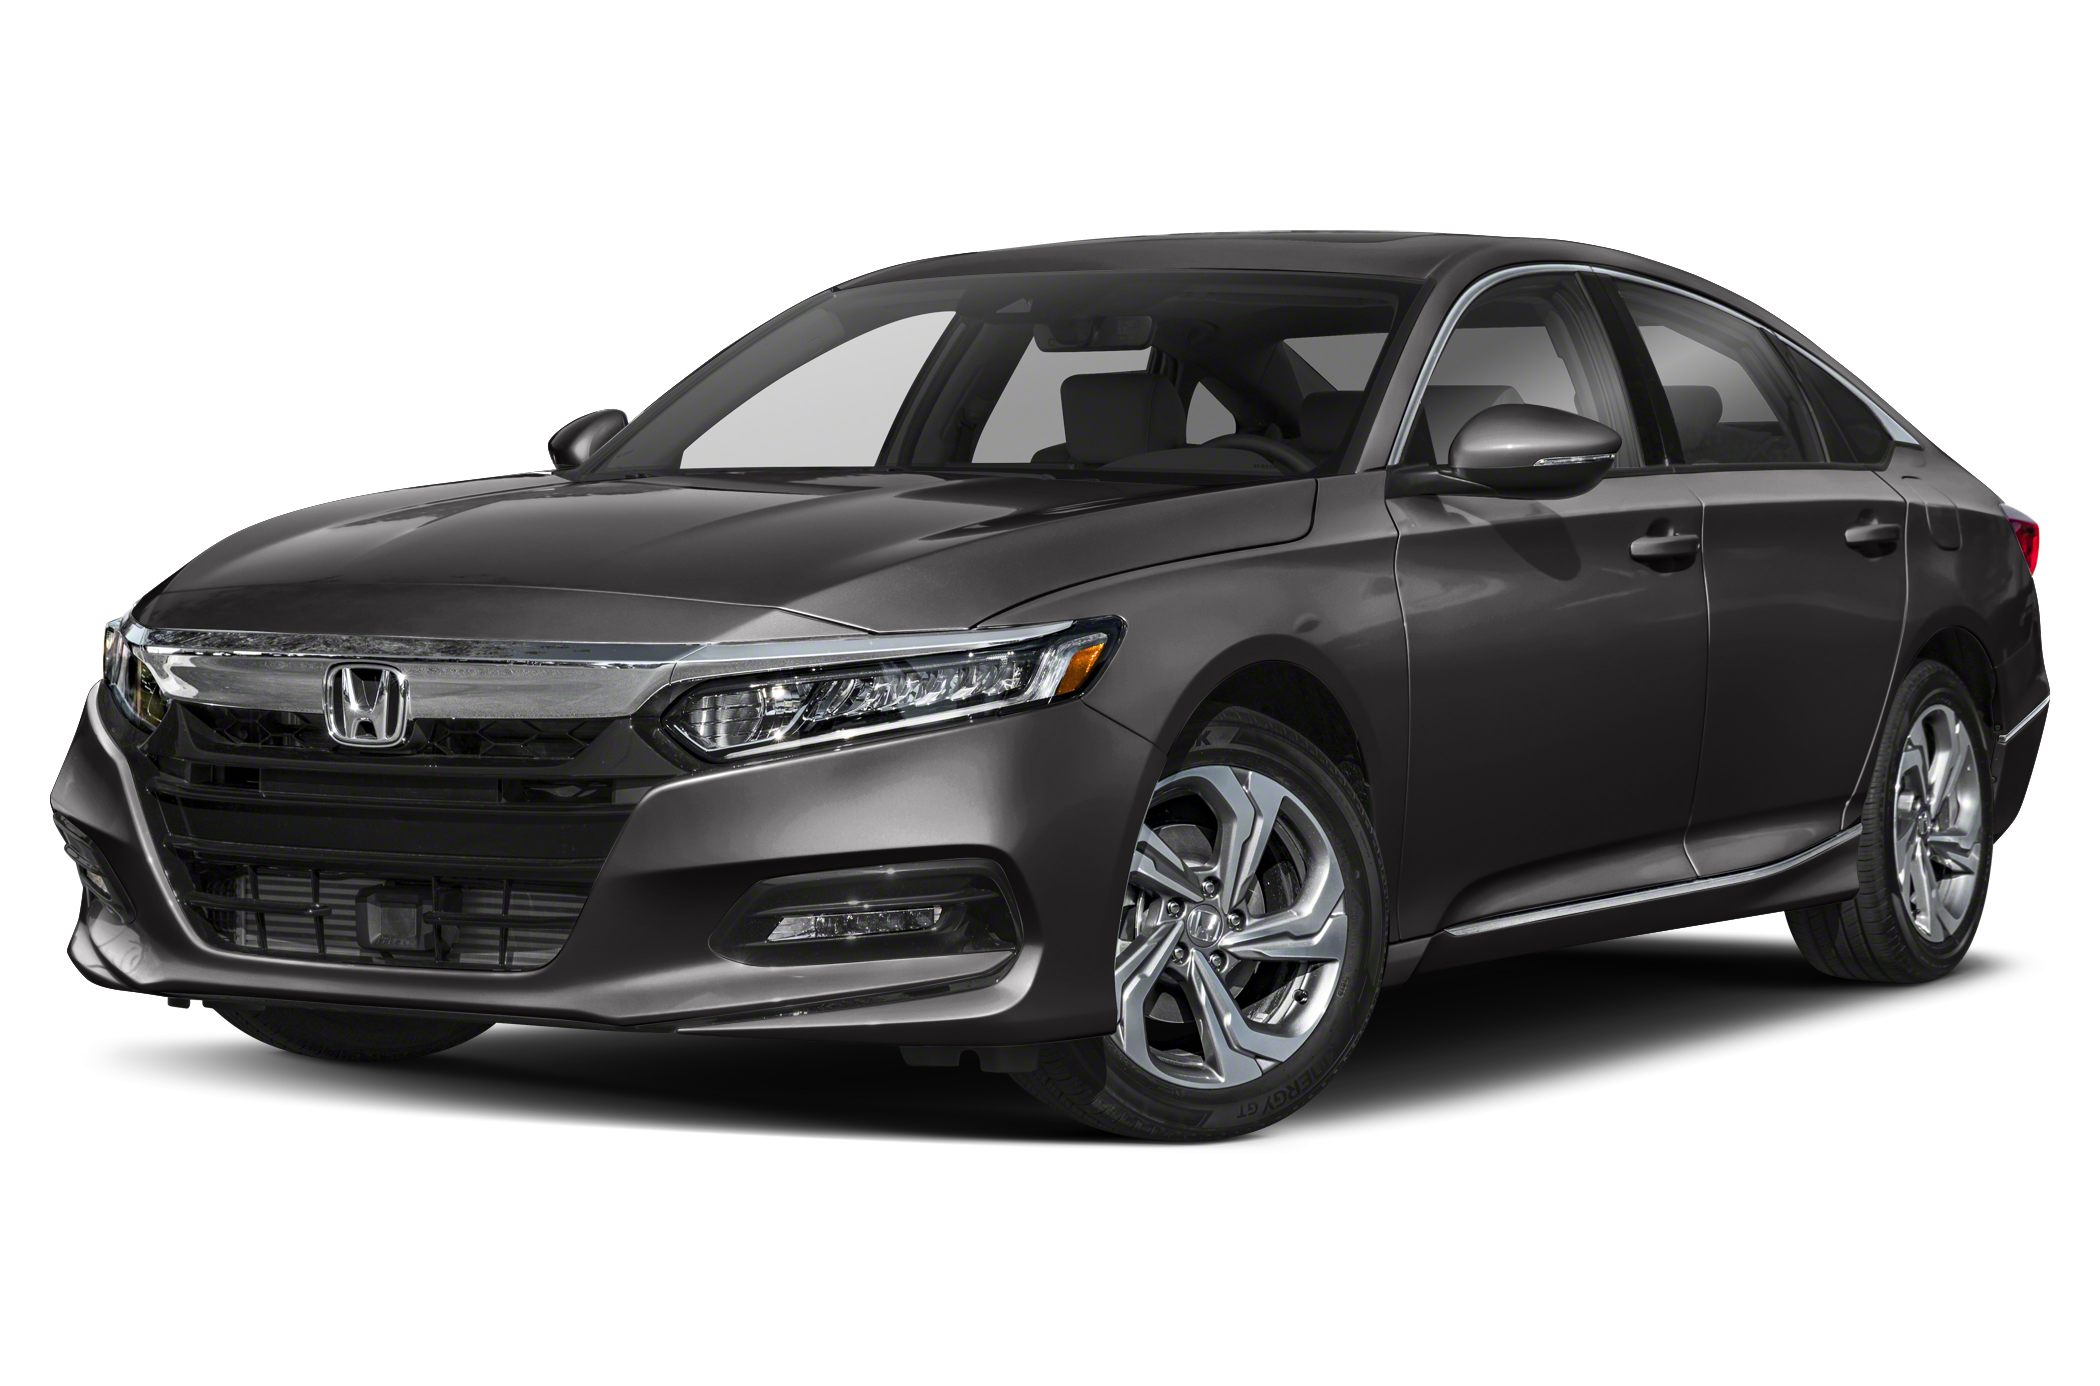 Ex L 4dr Sedan 2019 Honda Accord Photos